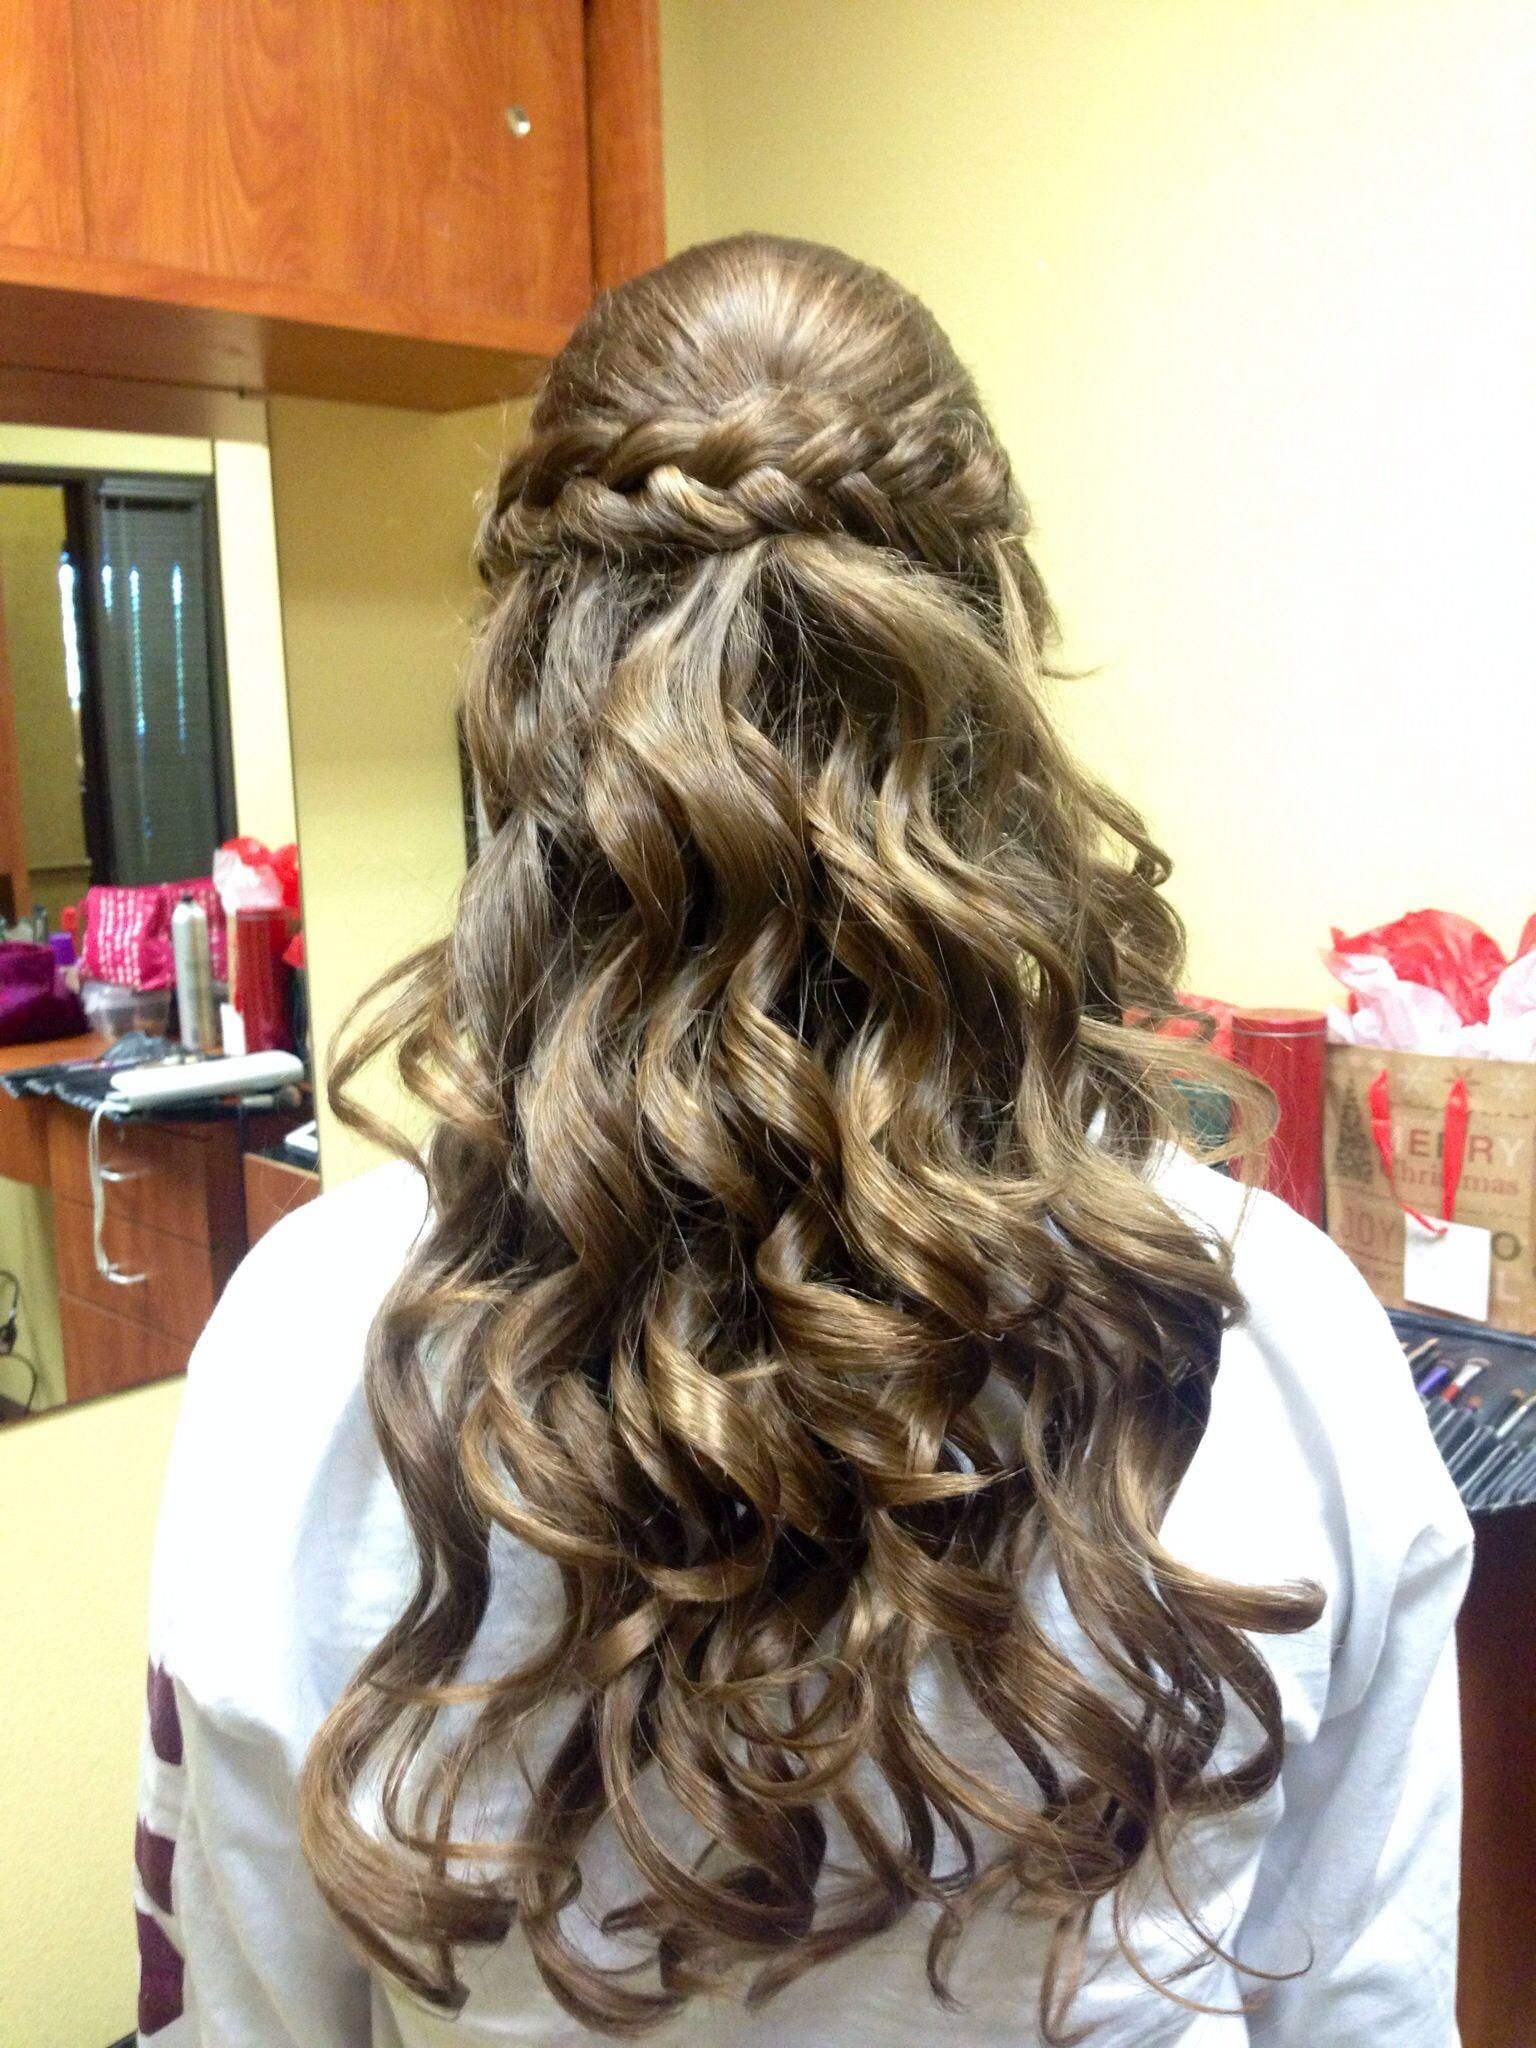 hair styles for school   cute hairstyles   hairstyles for